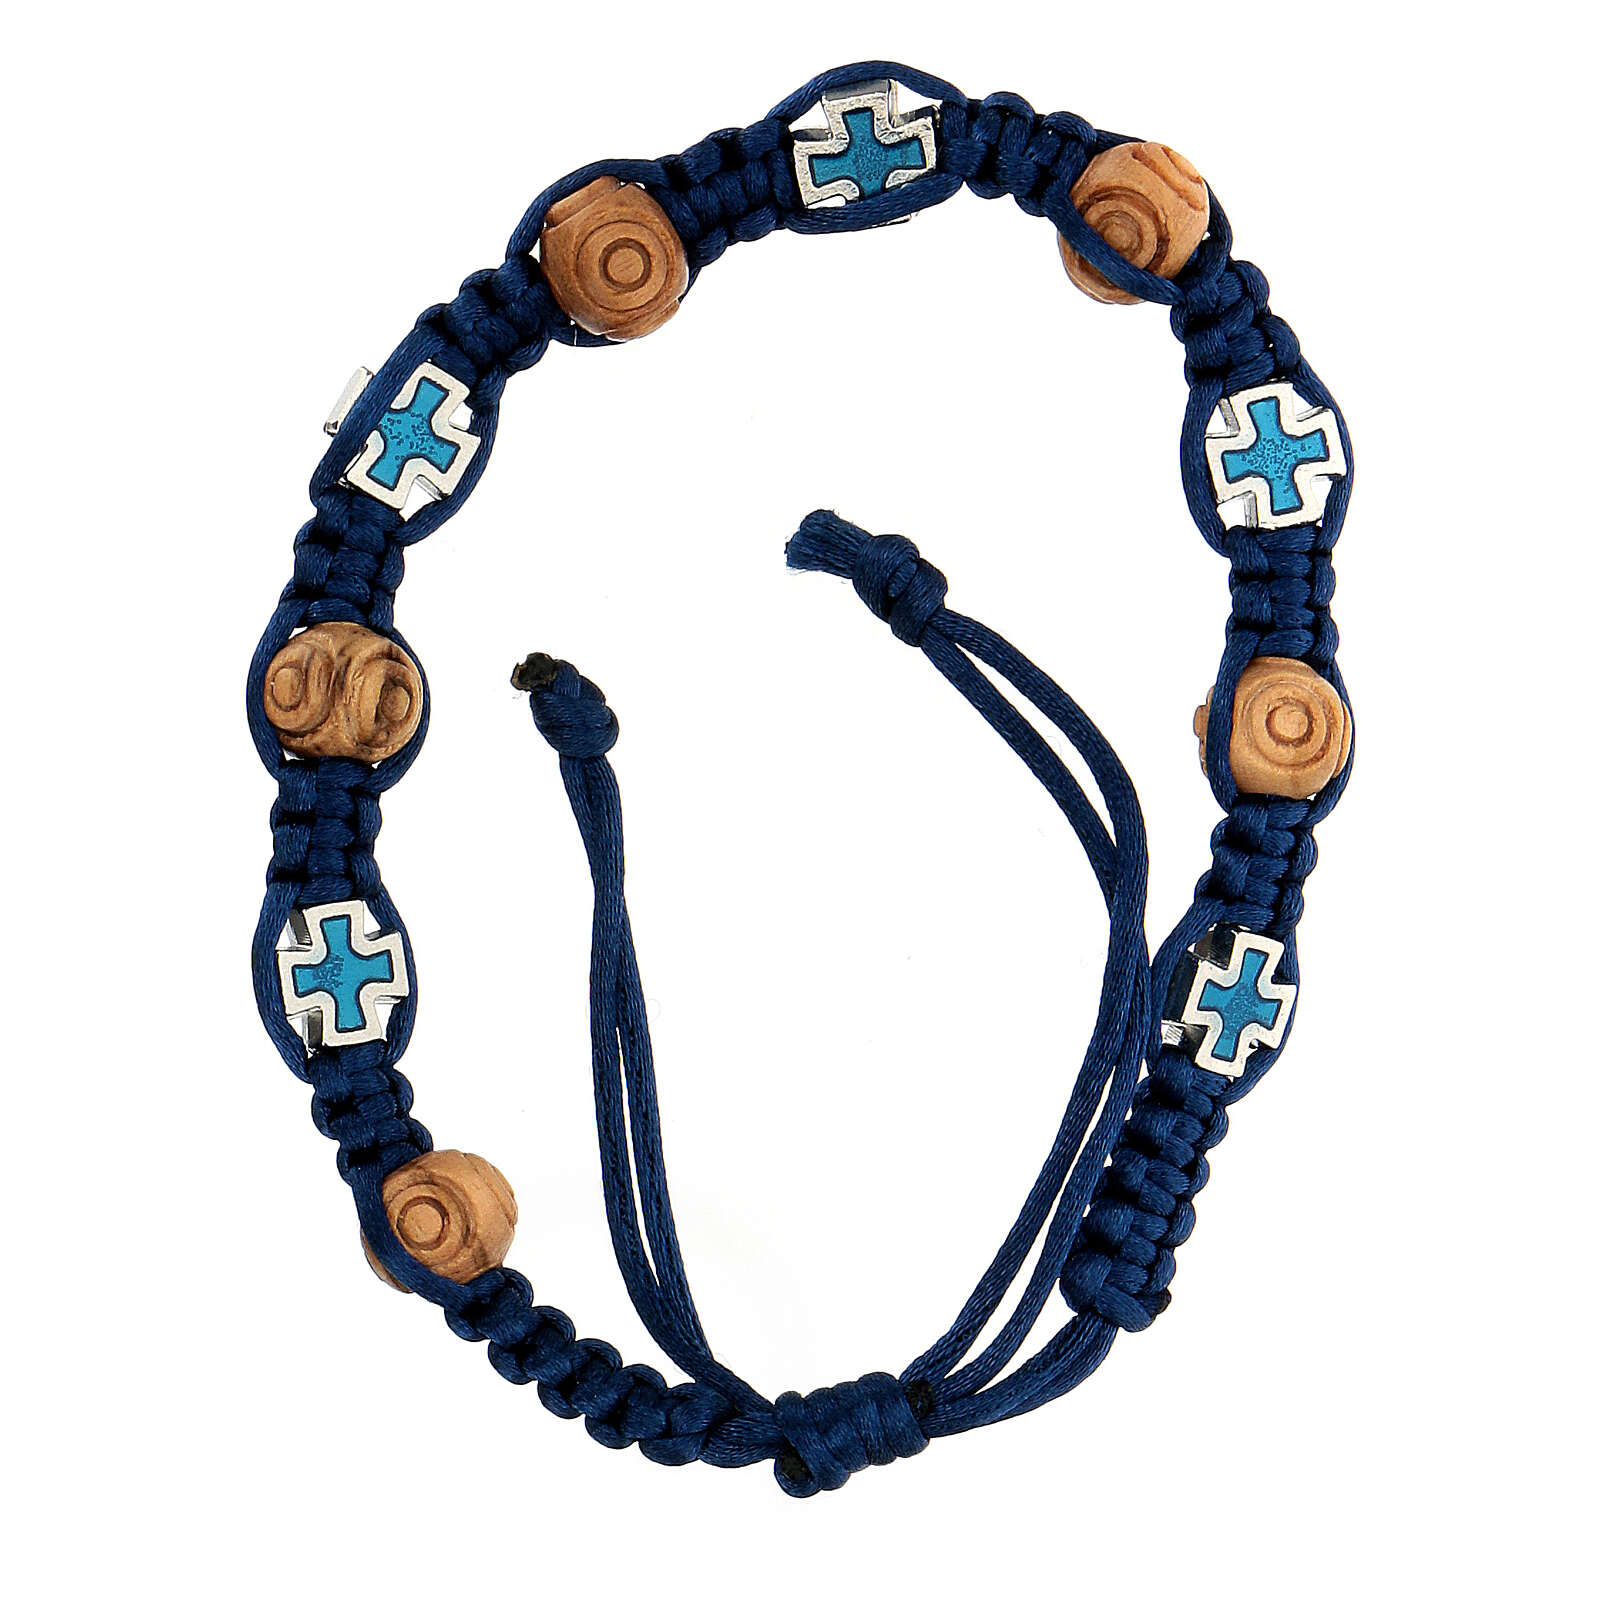 Rosary bracelet with blue adjustable string, wooden beads and crosses 8x6 mm 4